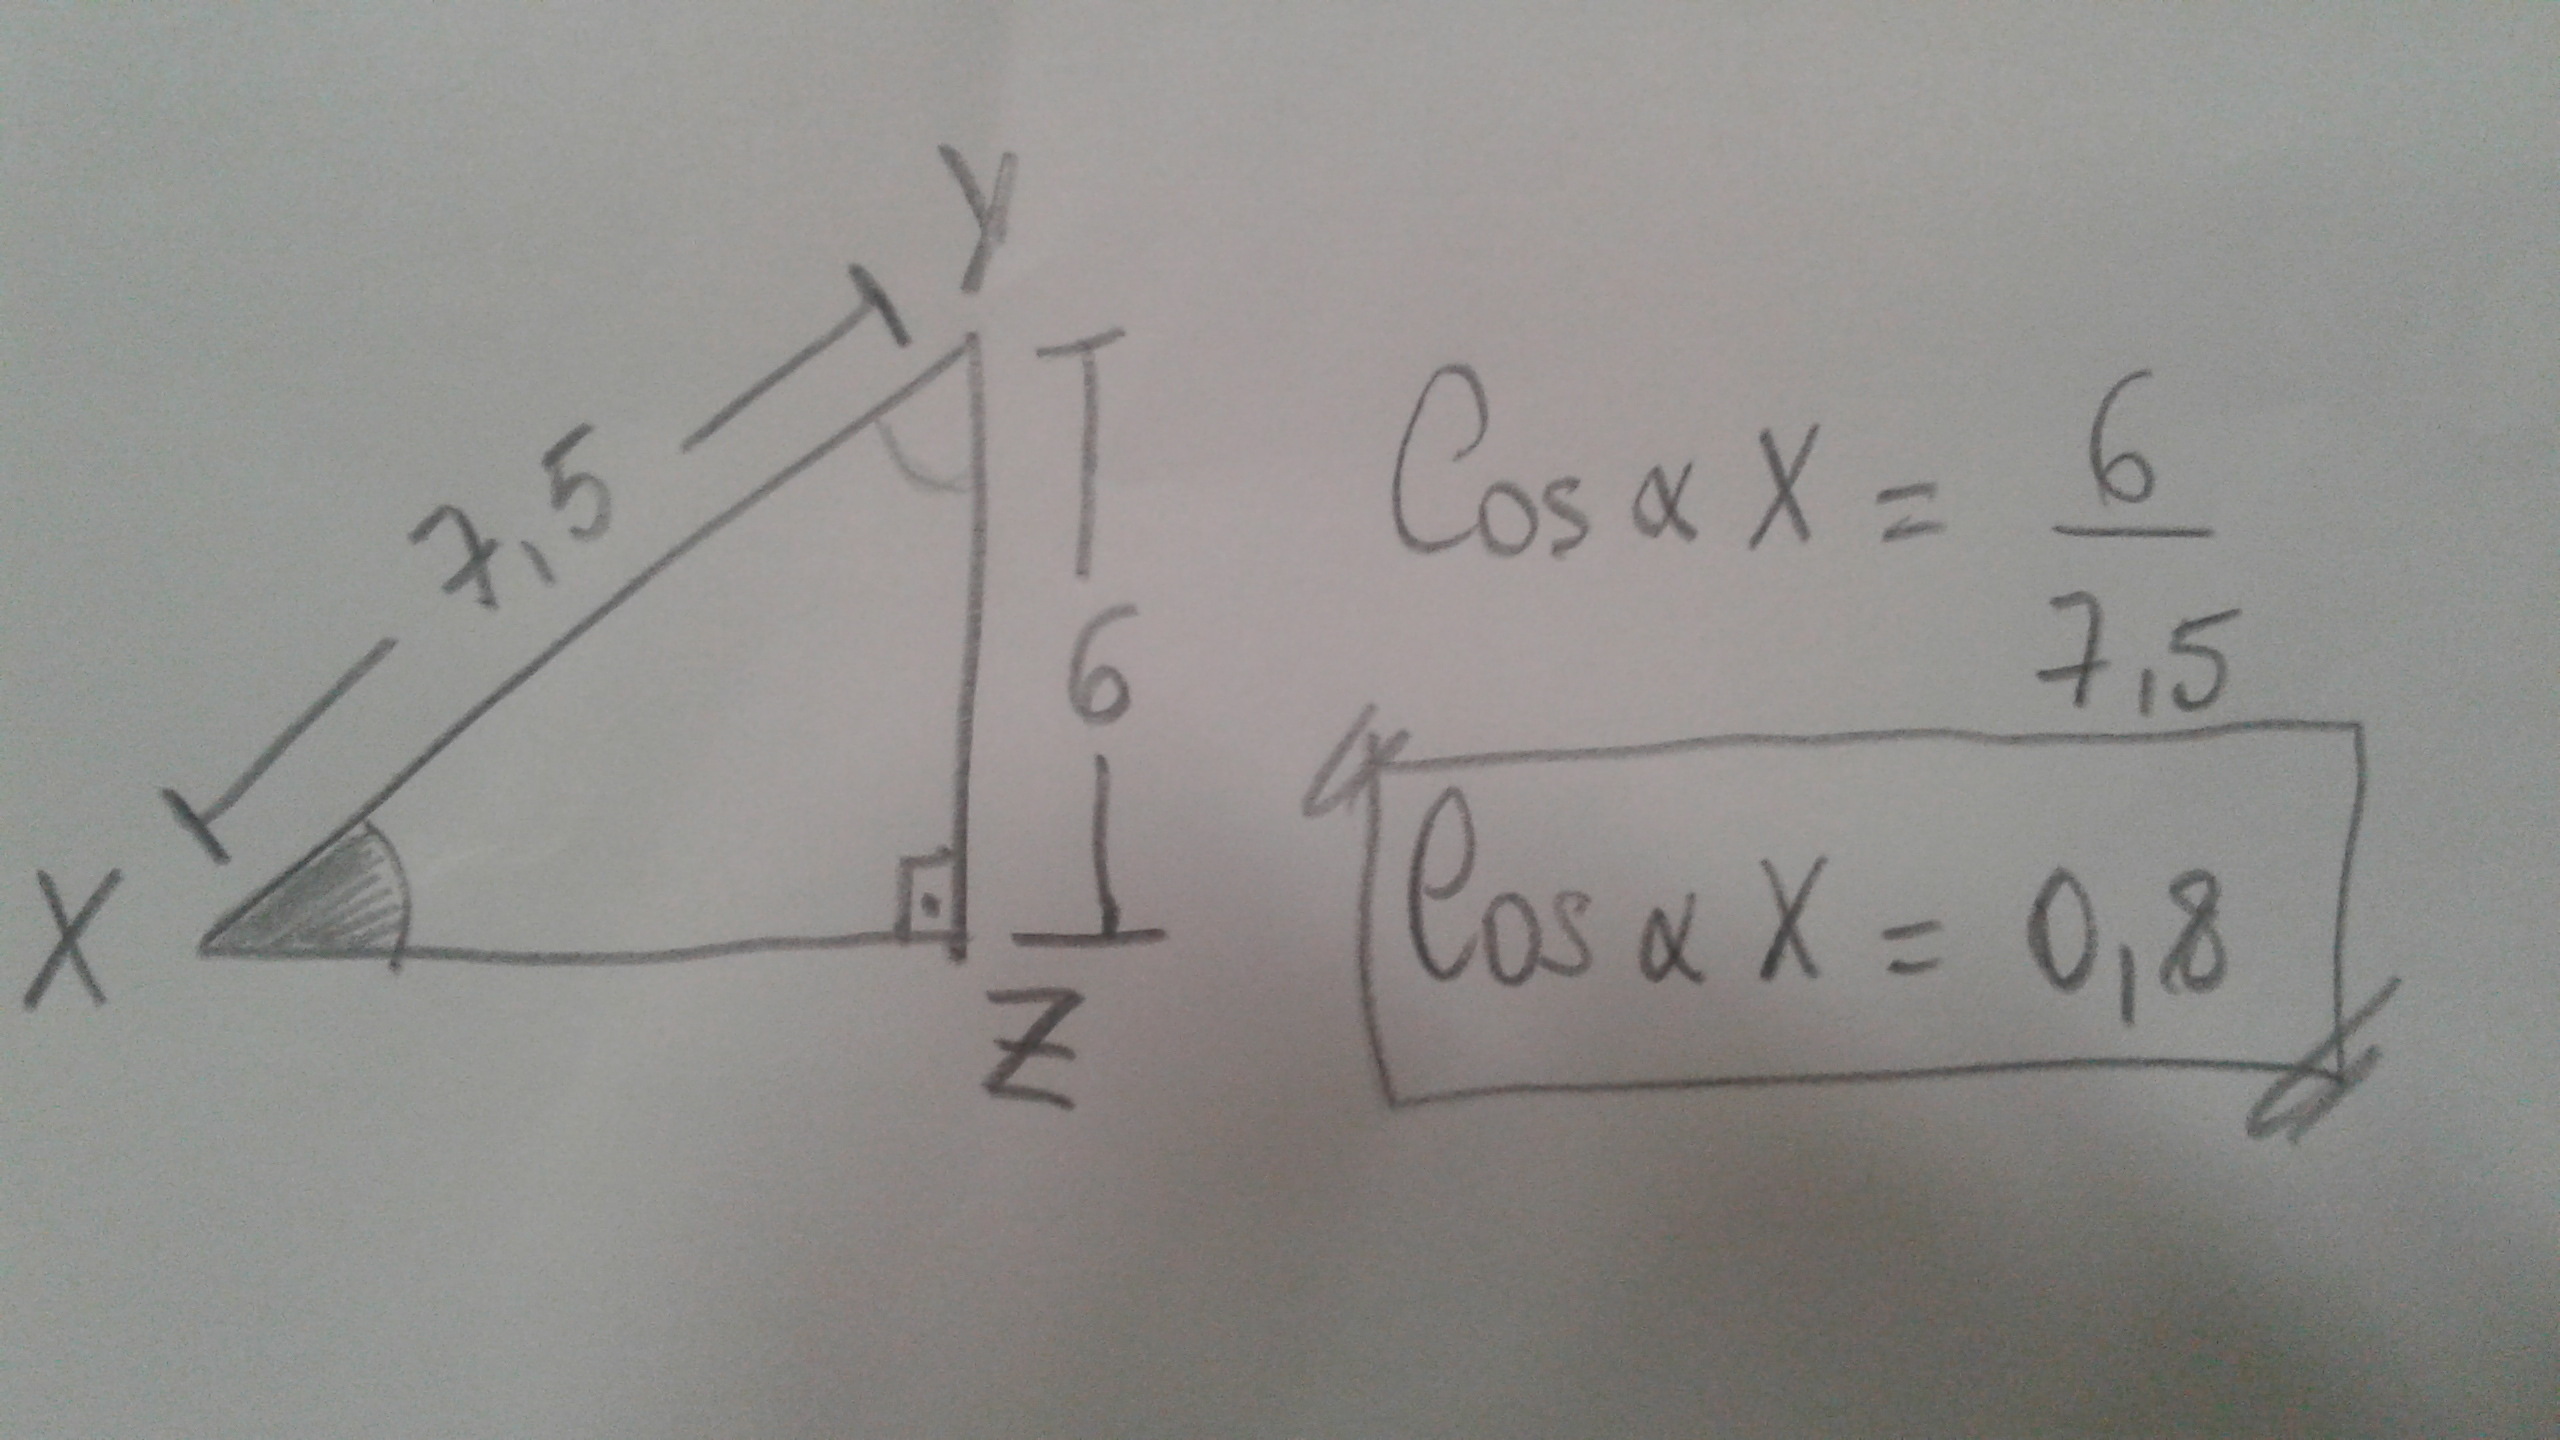 In Triangle Xyz What Is The Cosine Ratio Of Angle X Hypotenuse Is